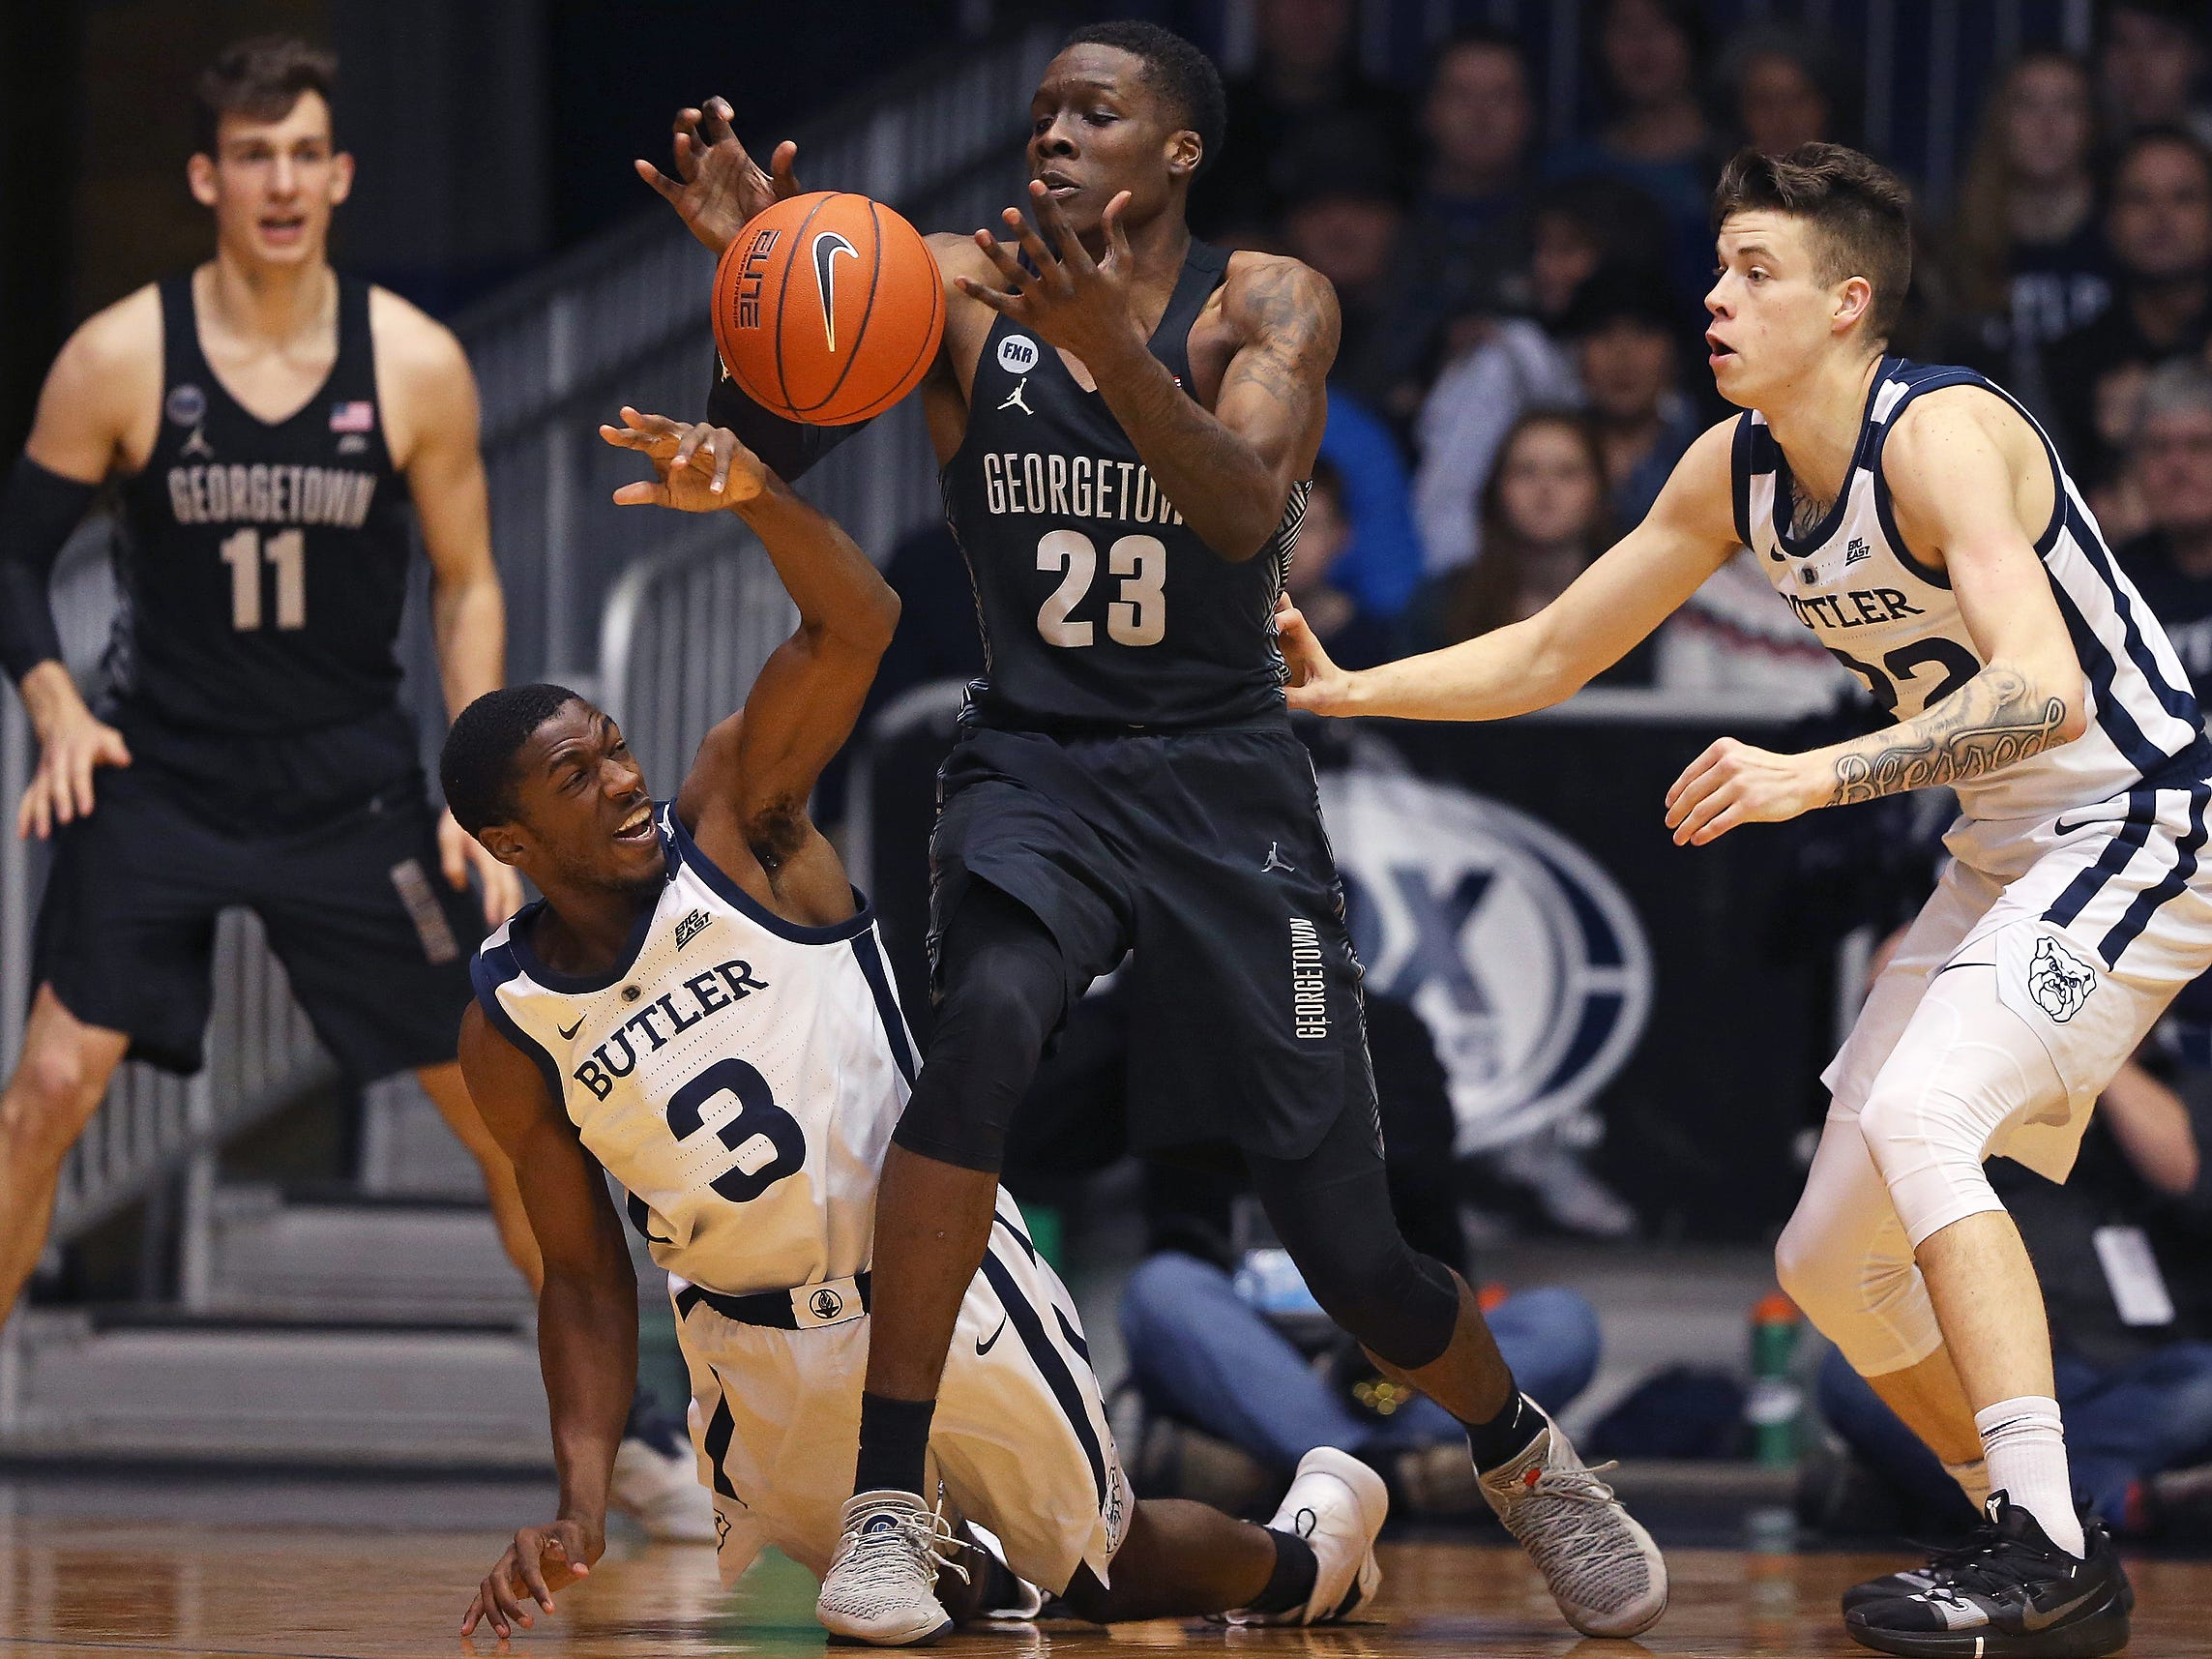 Georgetown Hoyas forward Josh LeBlanc (23) tries to recover a loose ball against Butler Bulldogs guard Kamar Baldwin (3) during the first half of game action between Butler University and Georgetown University, at Hinkle Fieldhouse in Indianapolis, Indiana on Wednesday, Jan. 2, 2019.